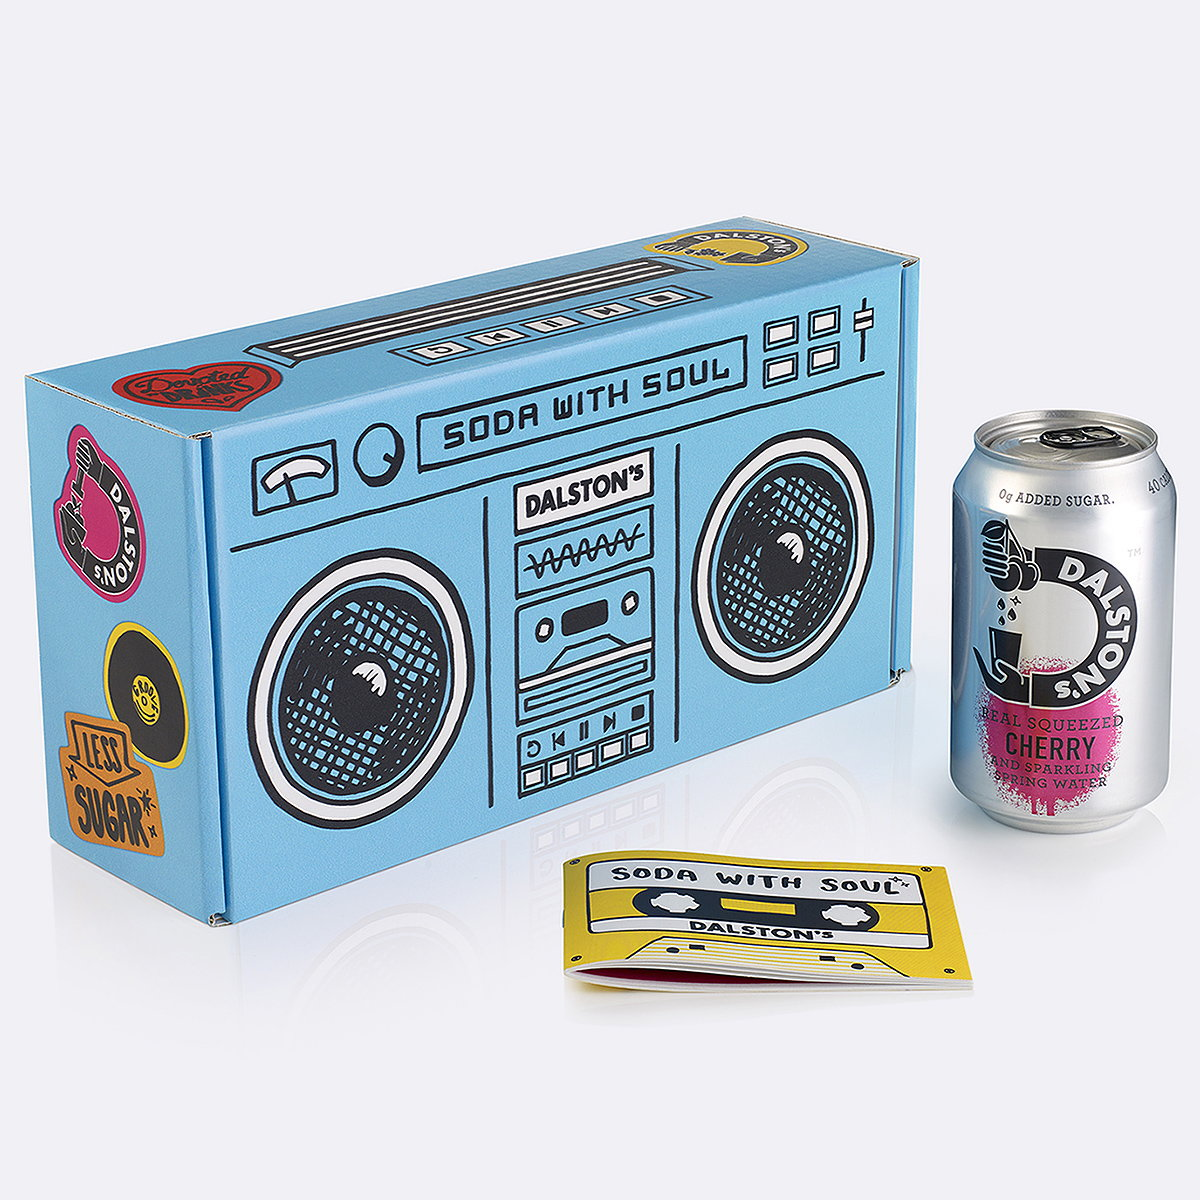 B&B Studio Designs Delivery Boxes for Dalston's Soda